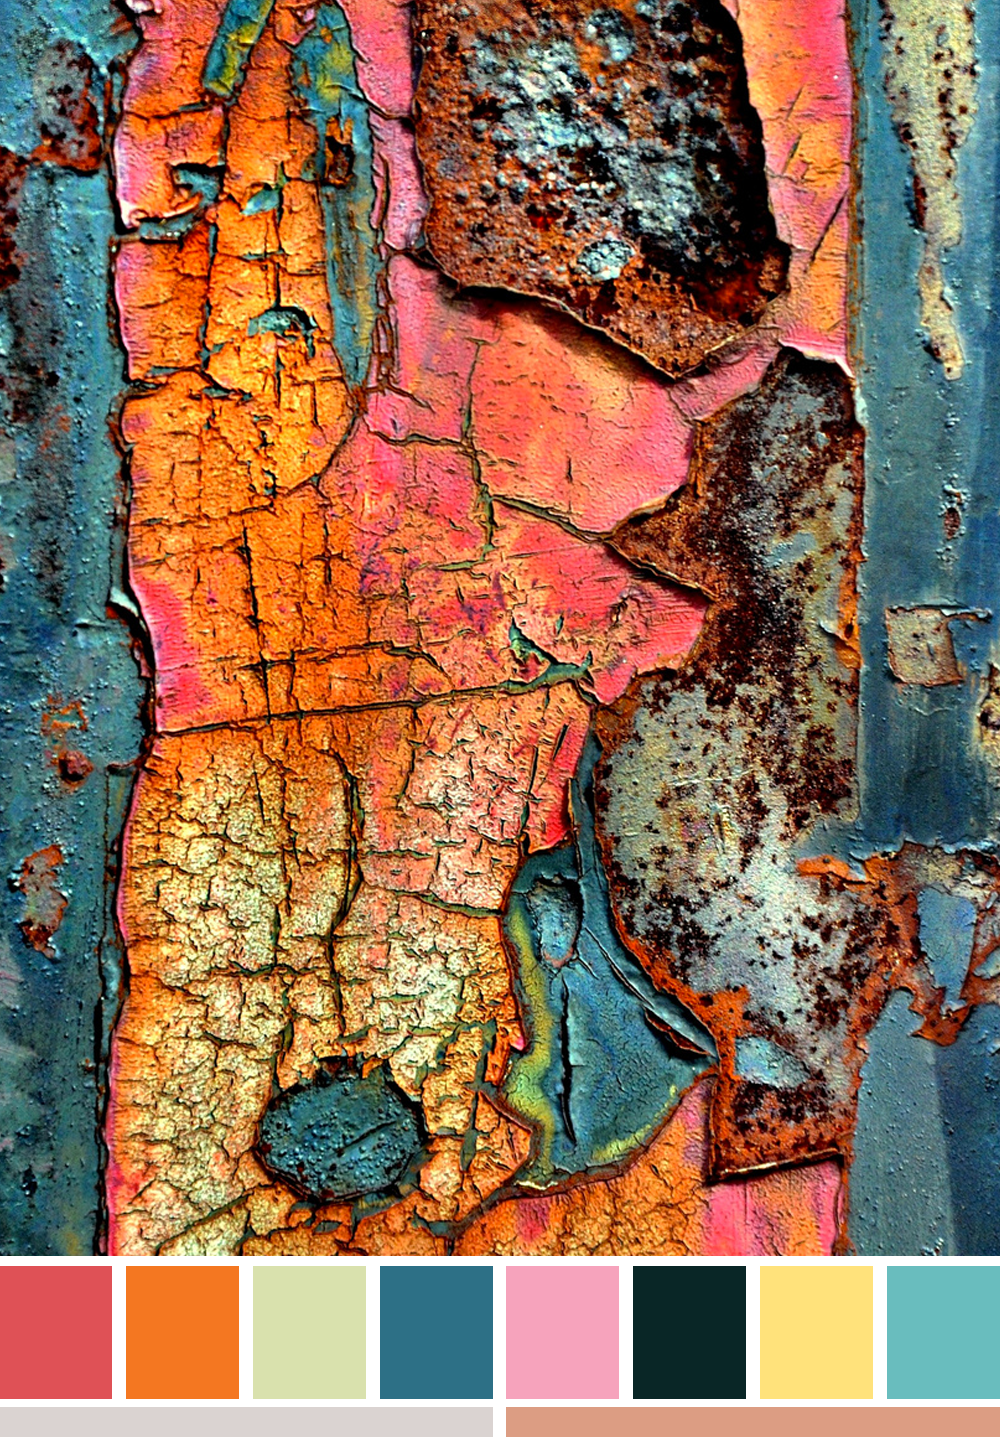 Image of rust texture with matching colour palette